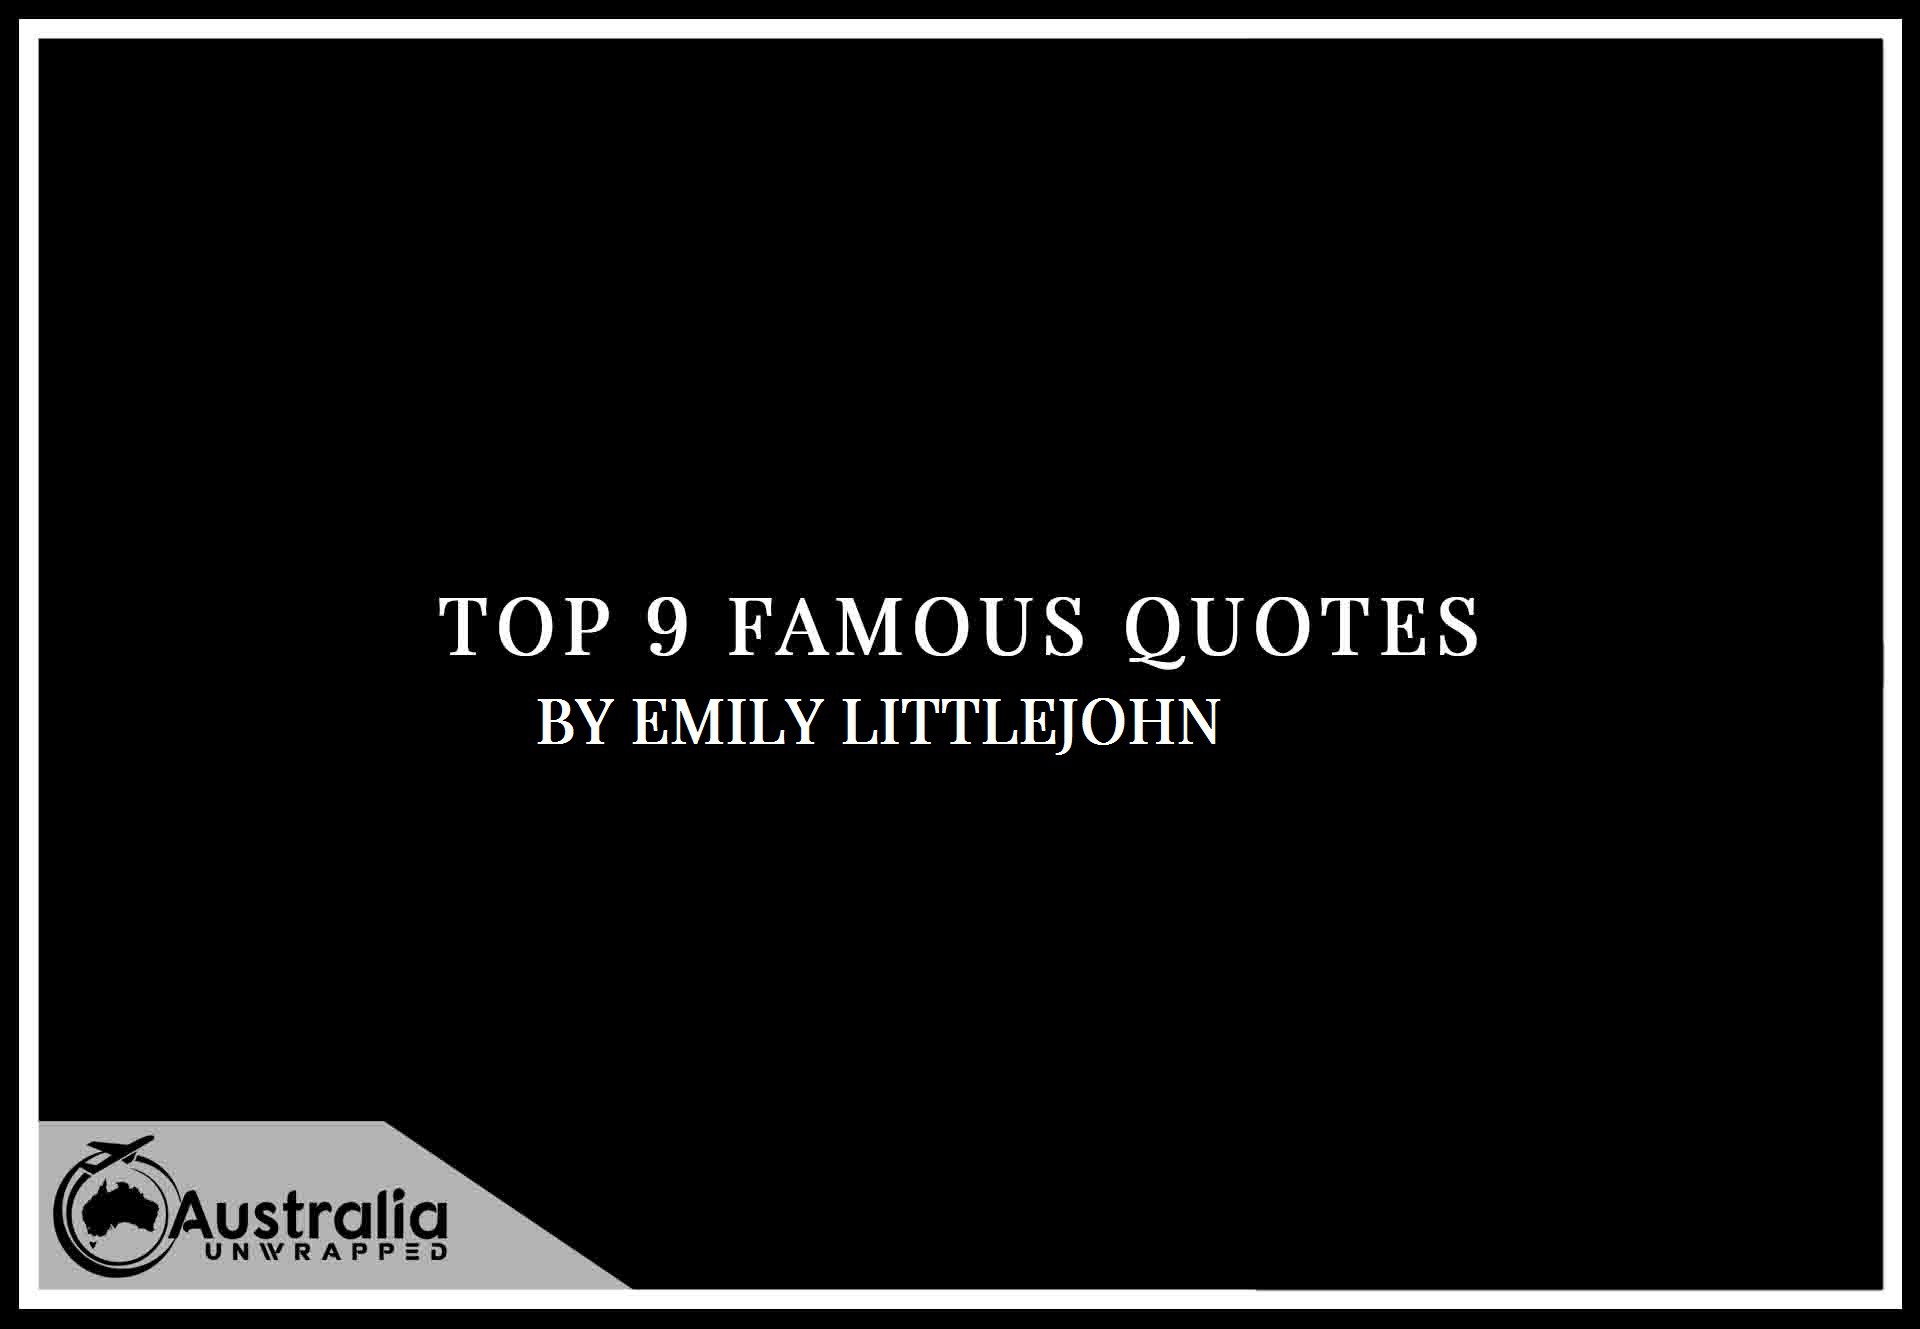 Emily Littlejohn's Top 9 Popular and Famous Quotes